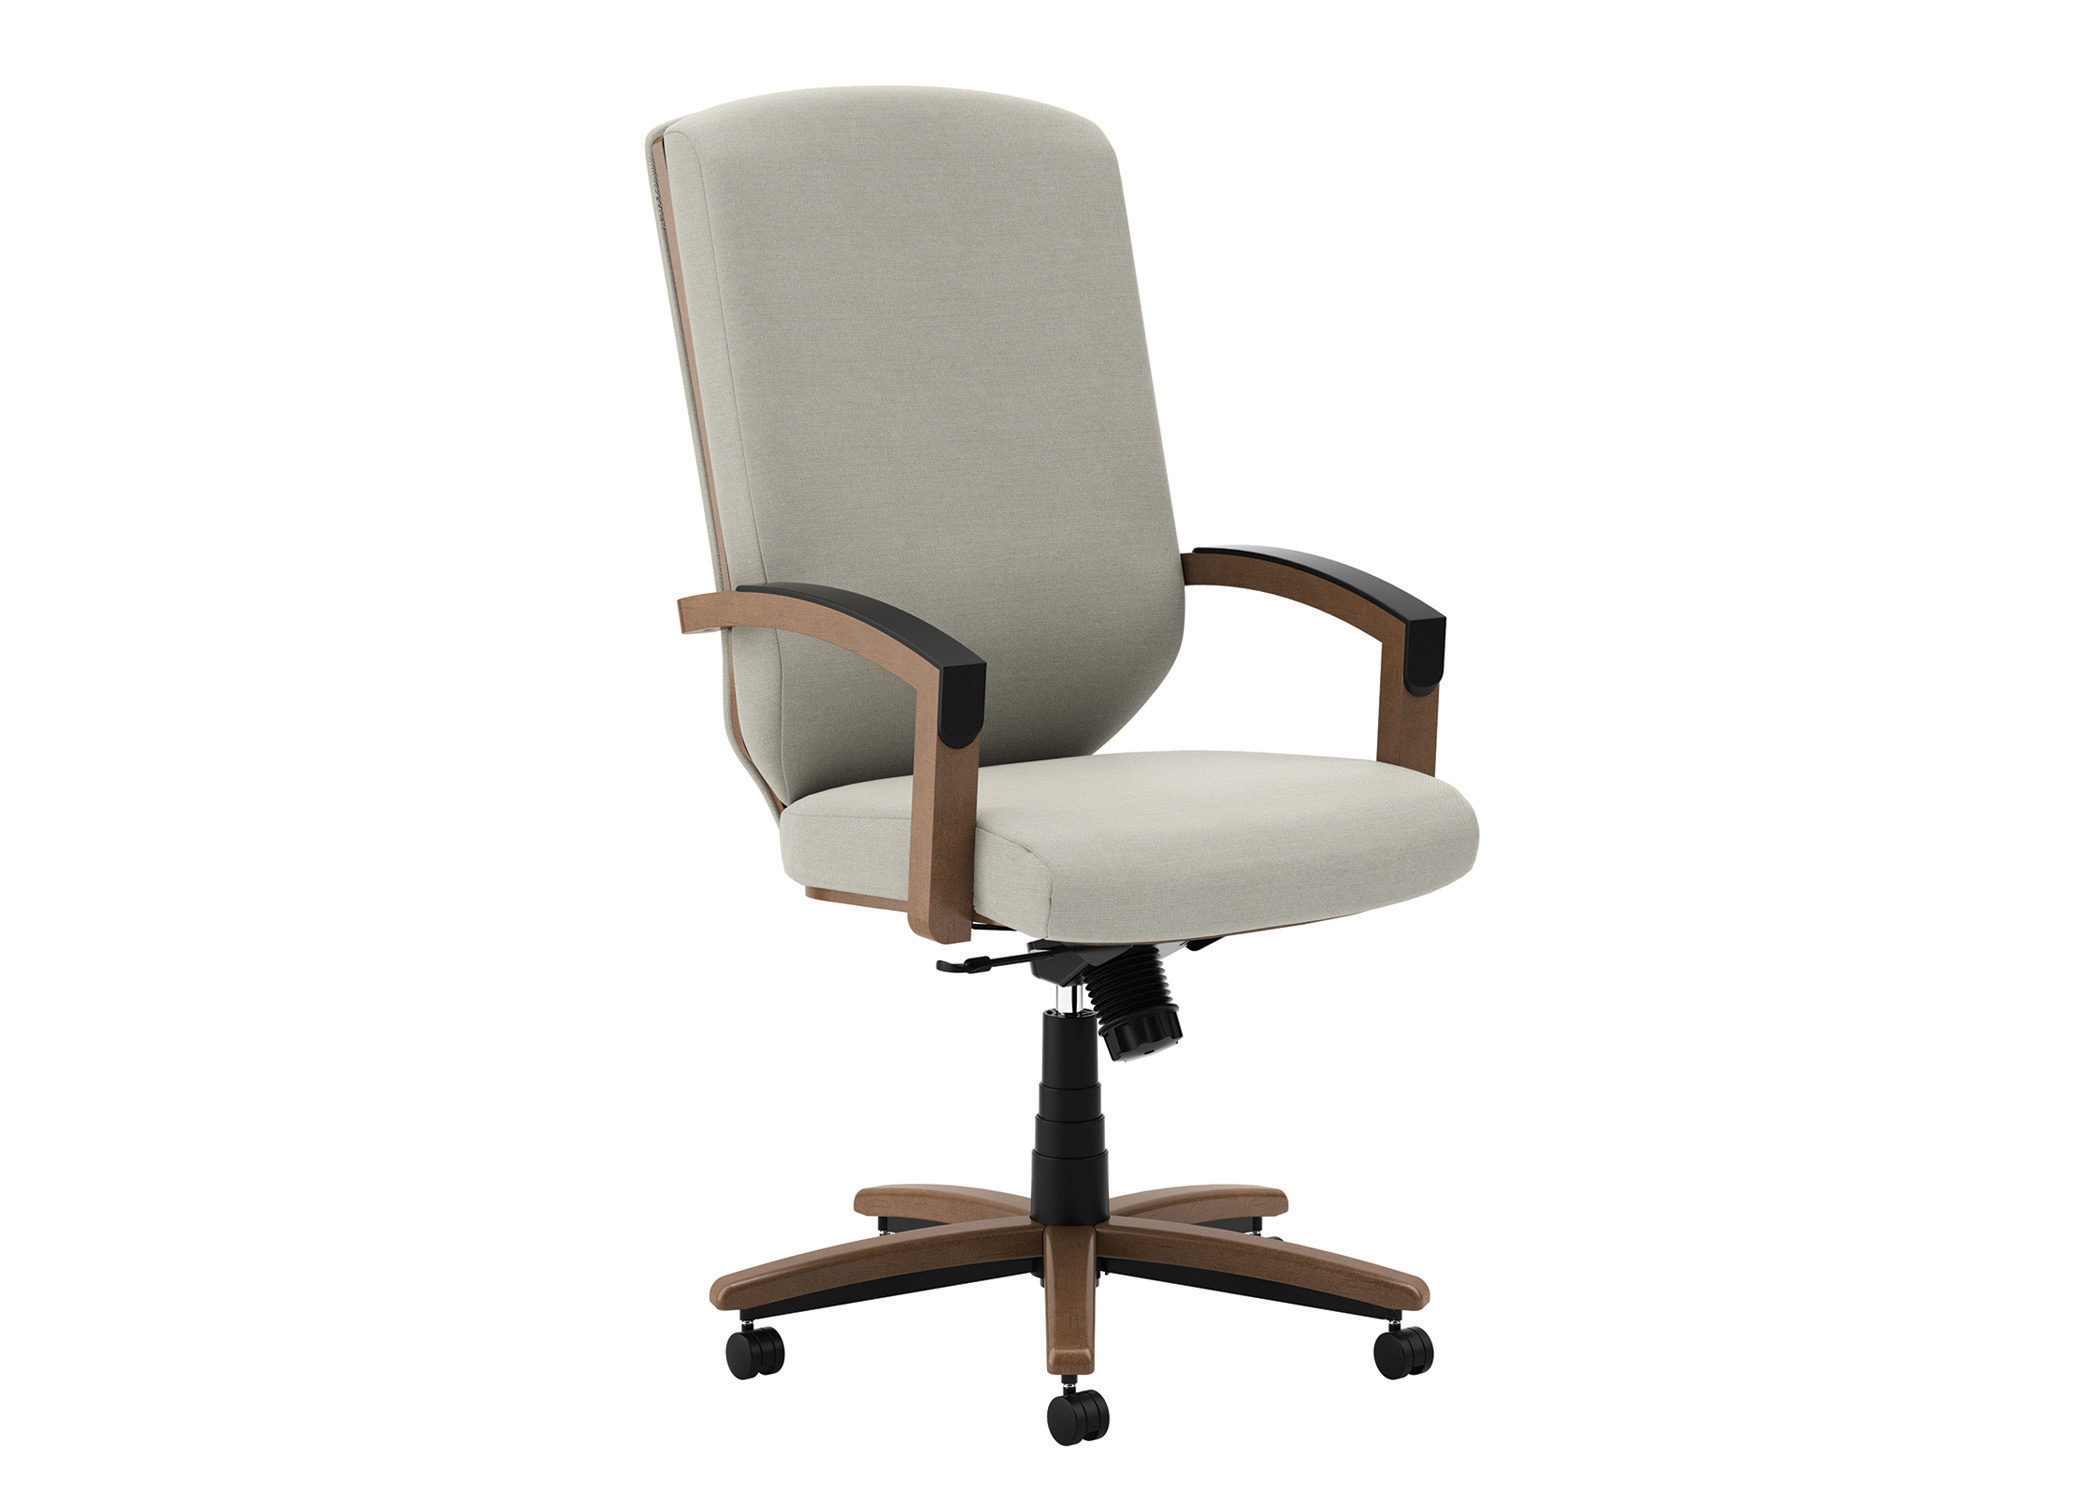 Office Furniture Chairs adjusting your chair | national office furniture